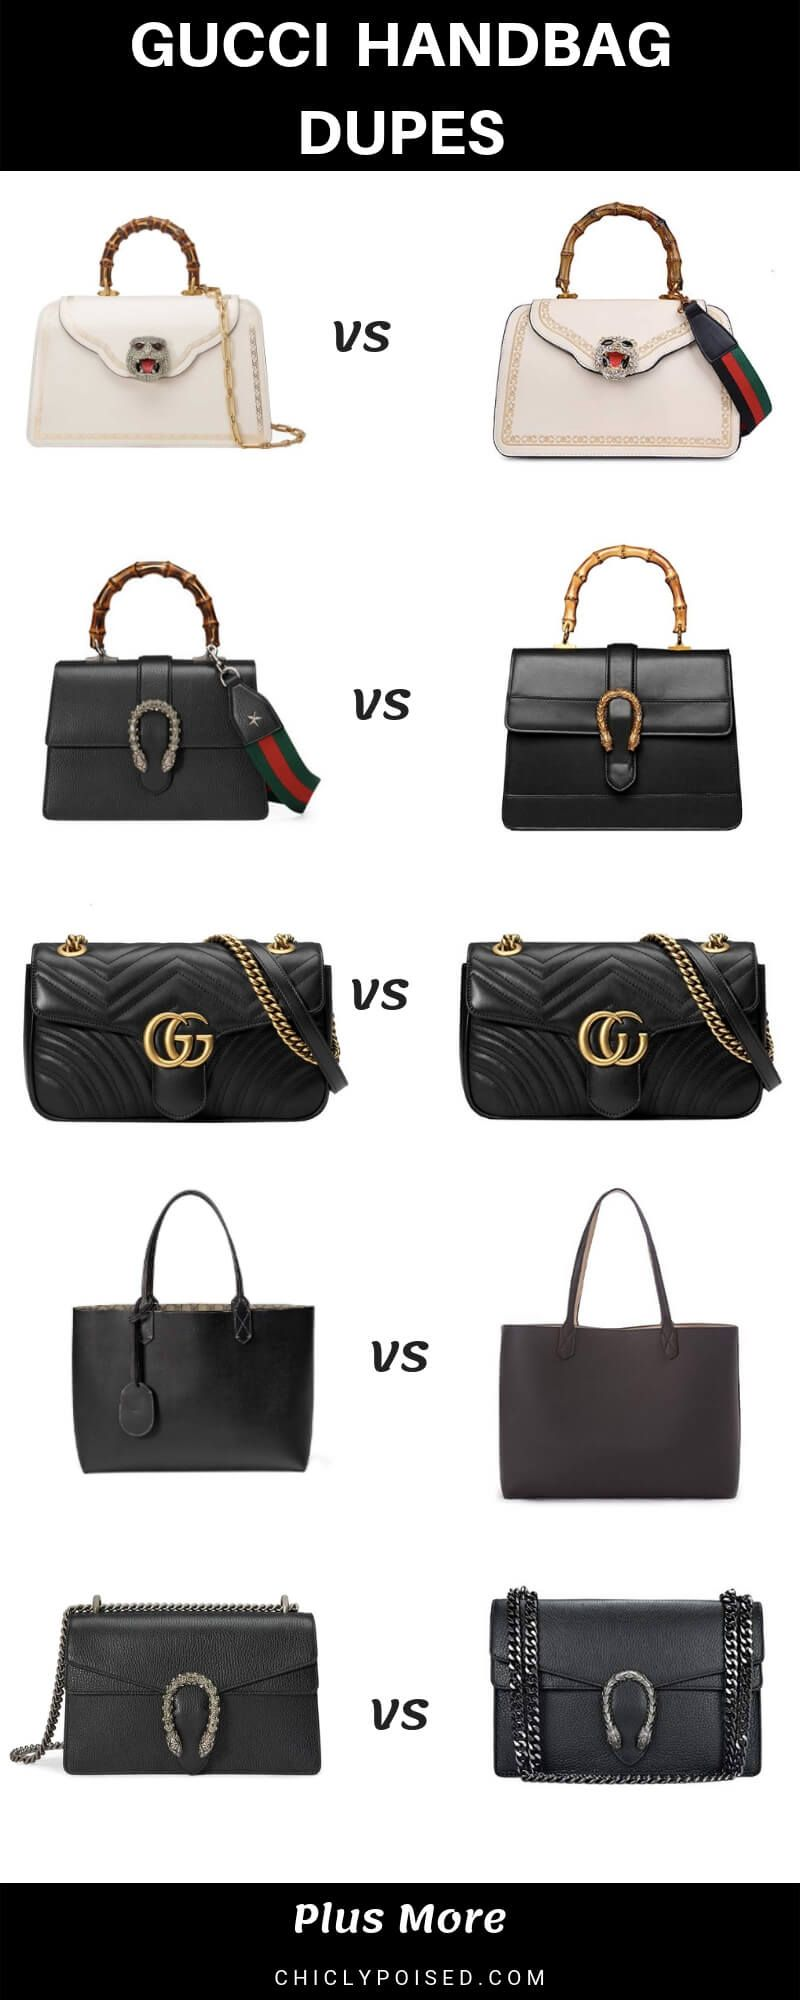 7be5c885777 Gucci Dupes For Less #designerdupes #dupes #guccidupes #guccidupehandbags  #designerinspiredbags #splurgevssteal #deisgnerdupebags #gucci ...